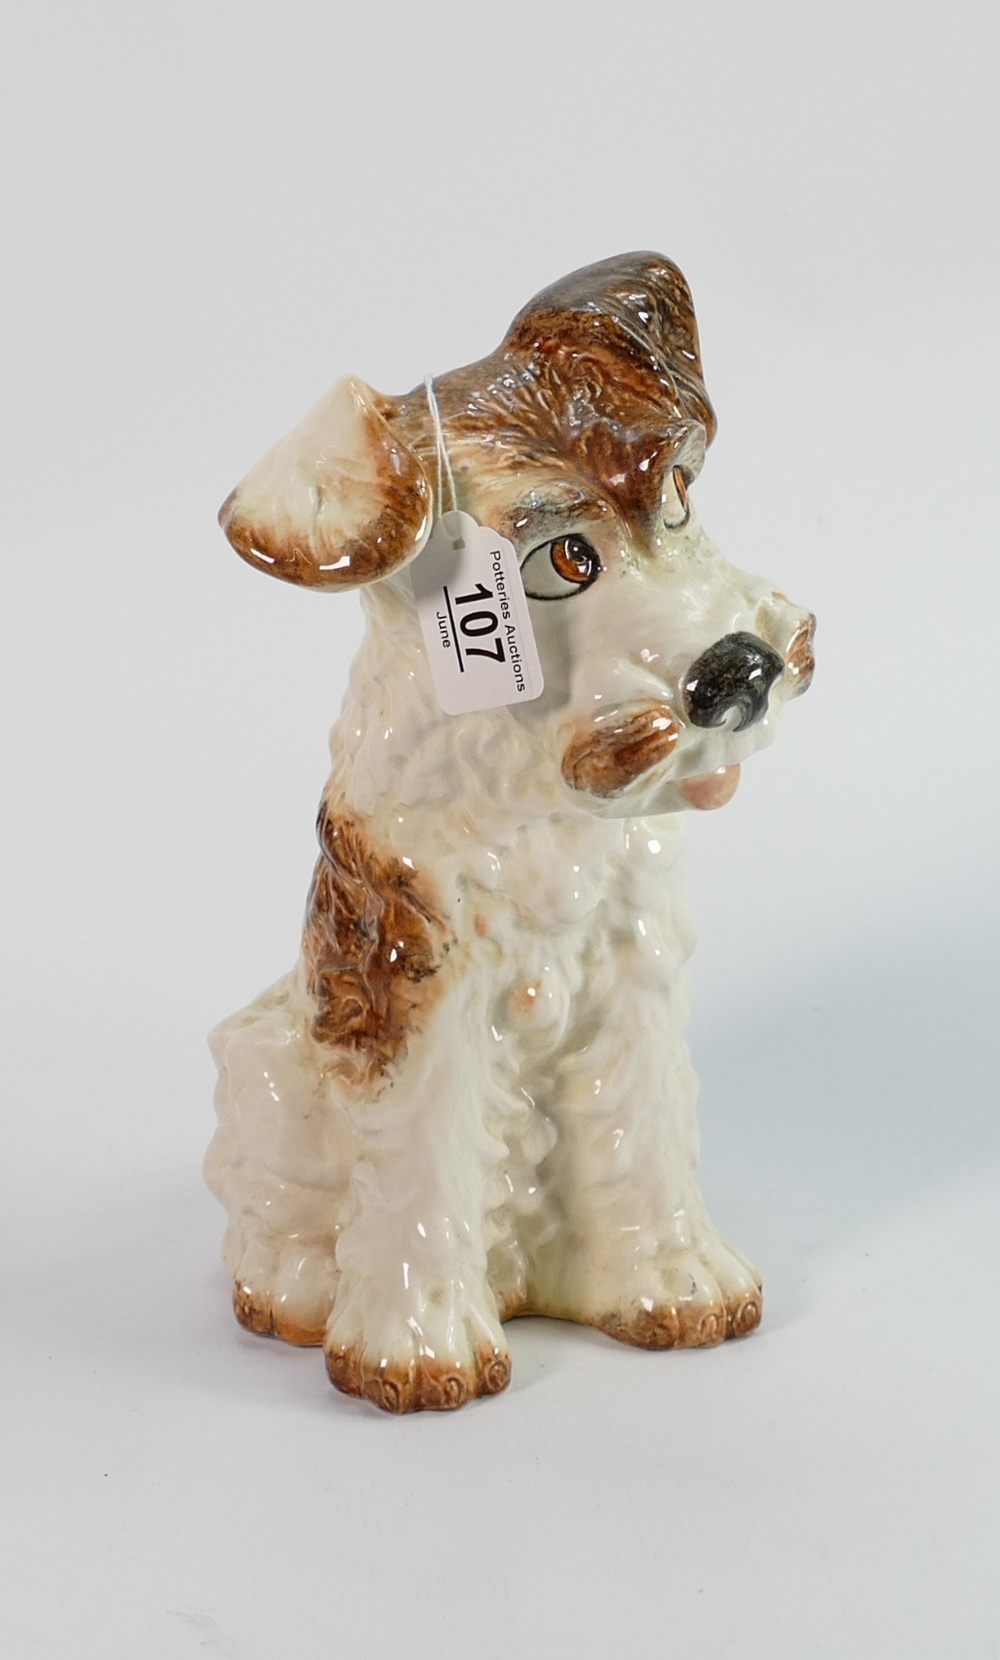 Large Sylvac painted dog ref: 29 cm high ref 1580 or 1380. - Image 2 of 2